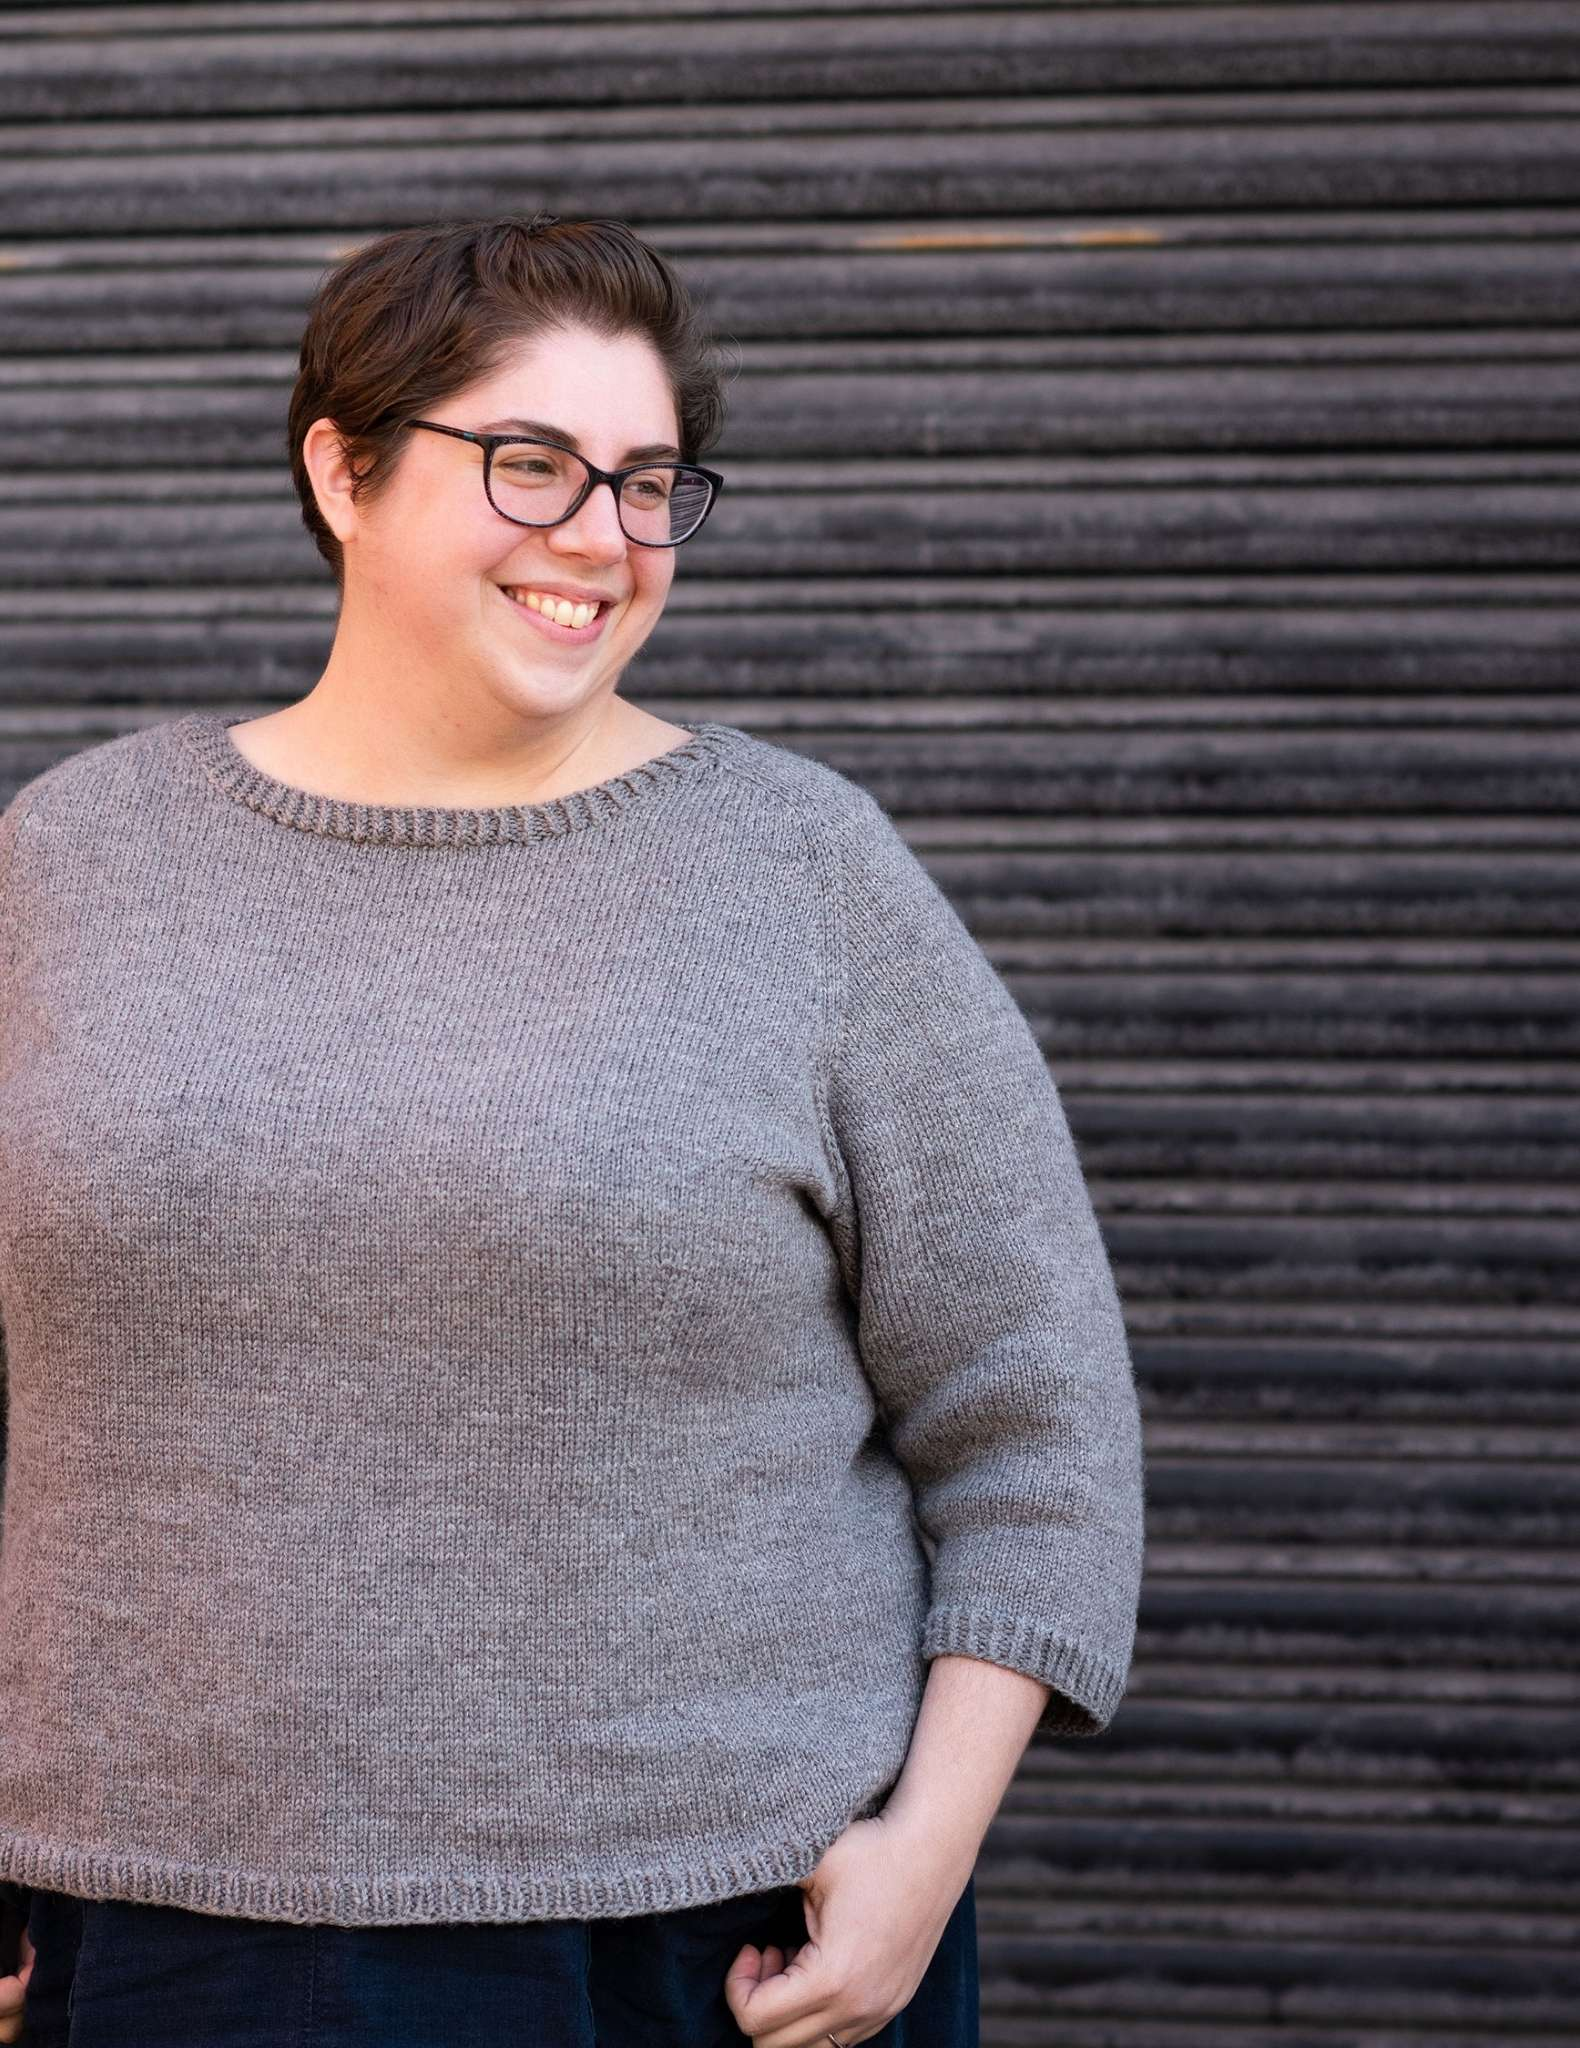 A white plus-size woman with dark hair and glasses wears a grey sweater, she is smiling and looking to the side with one hand resting on the top of a pocket